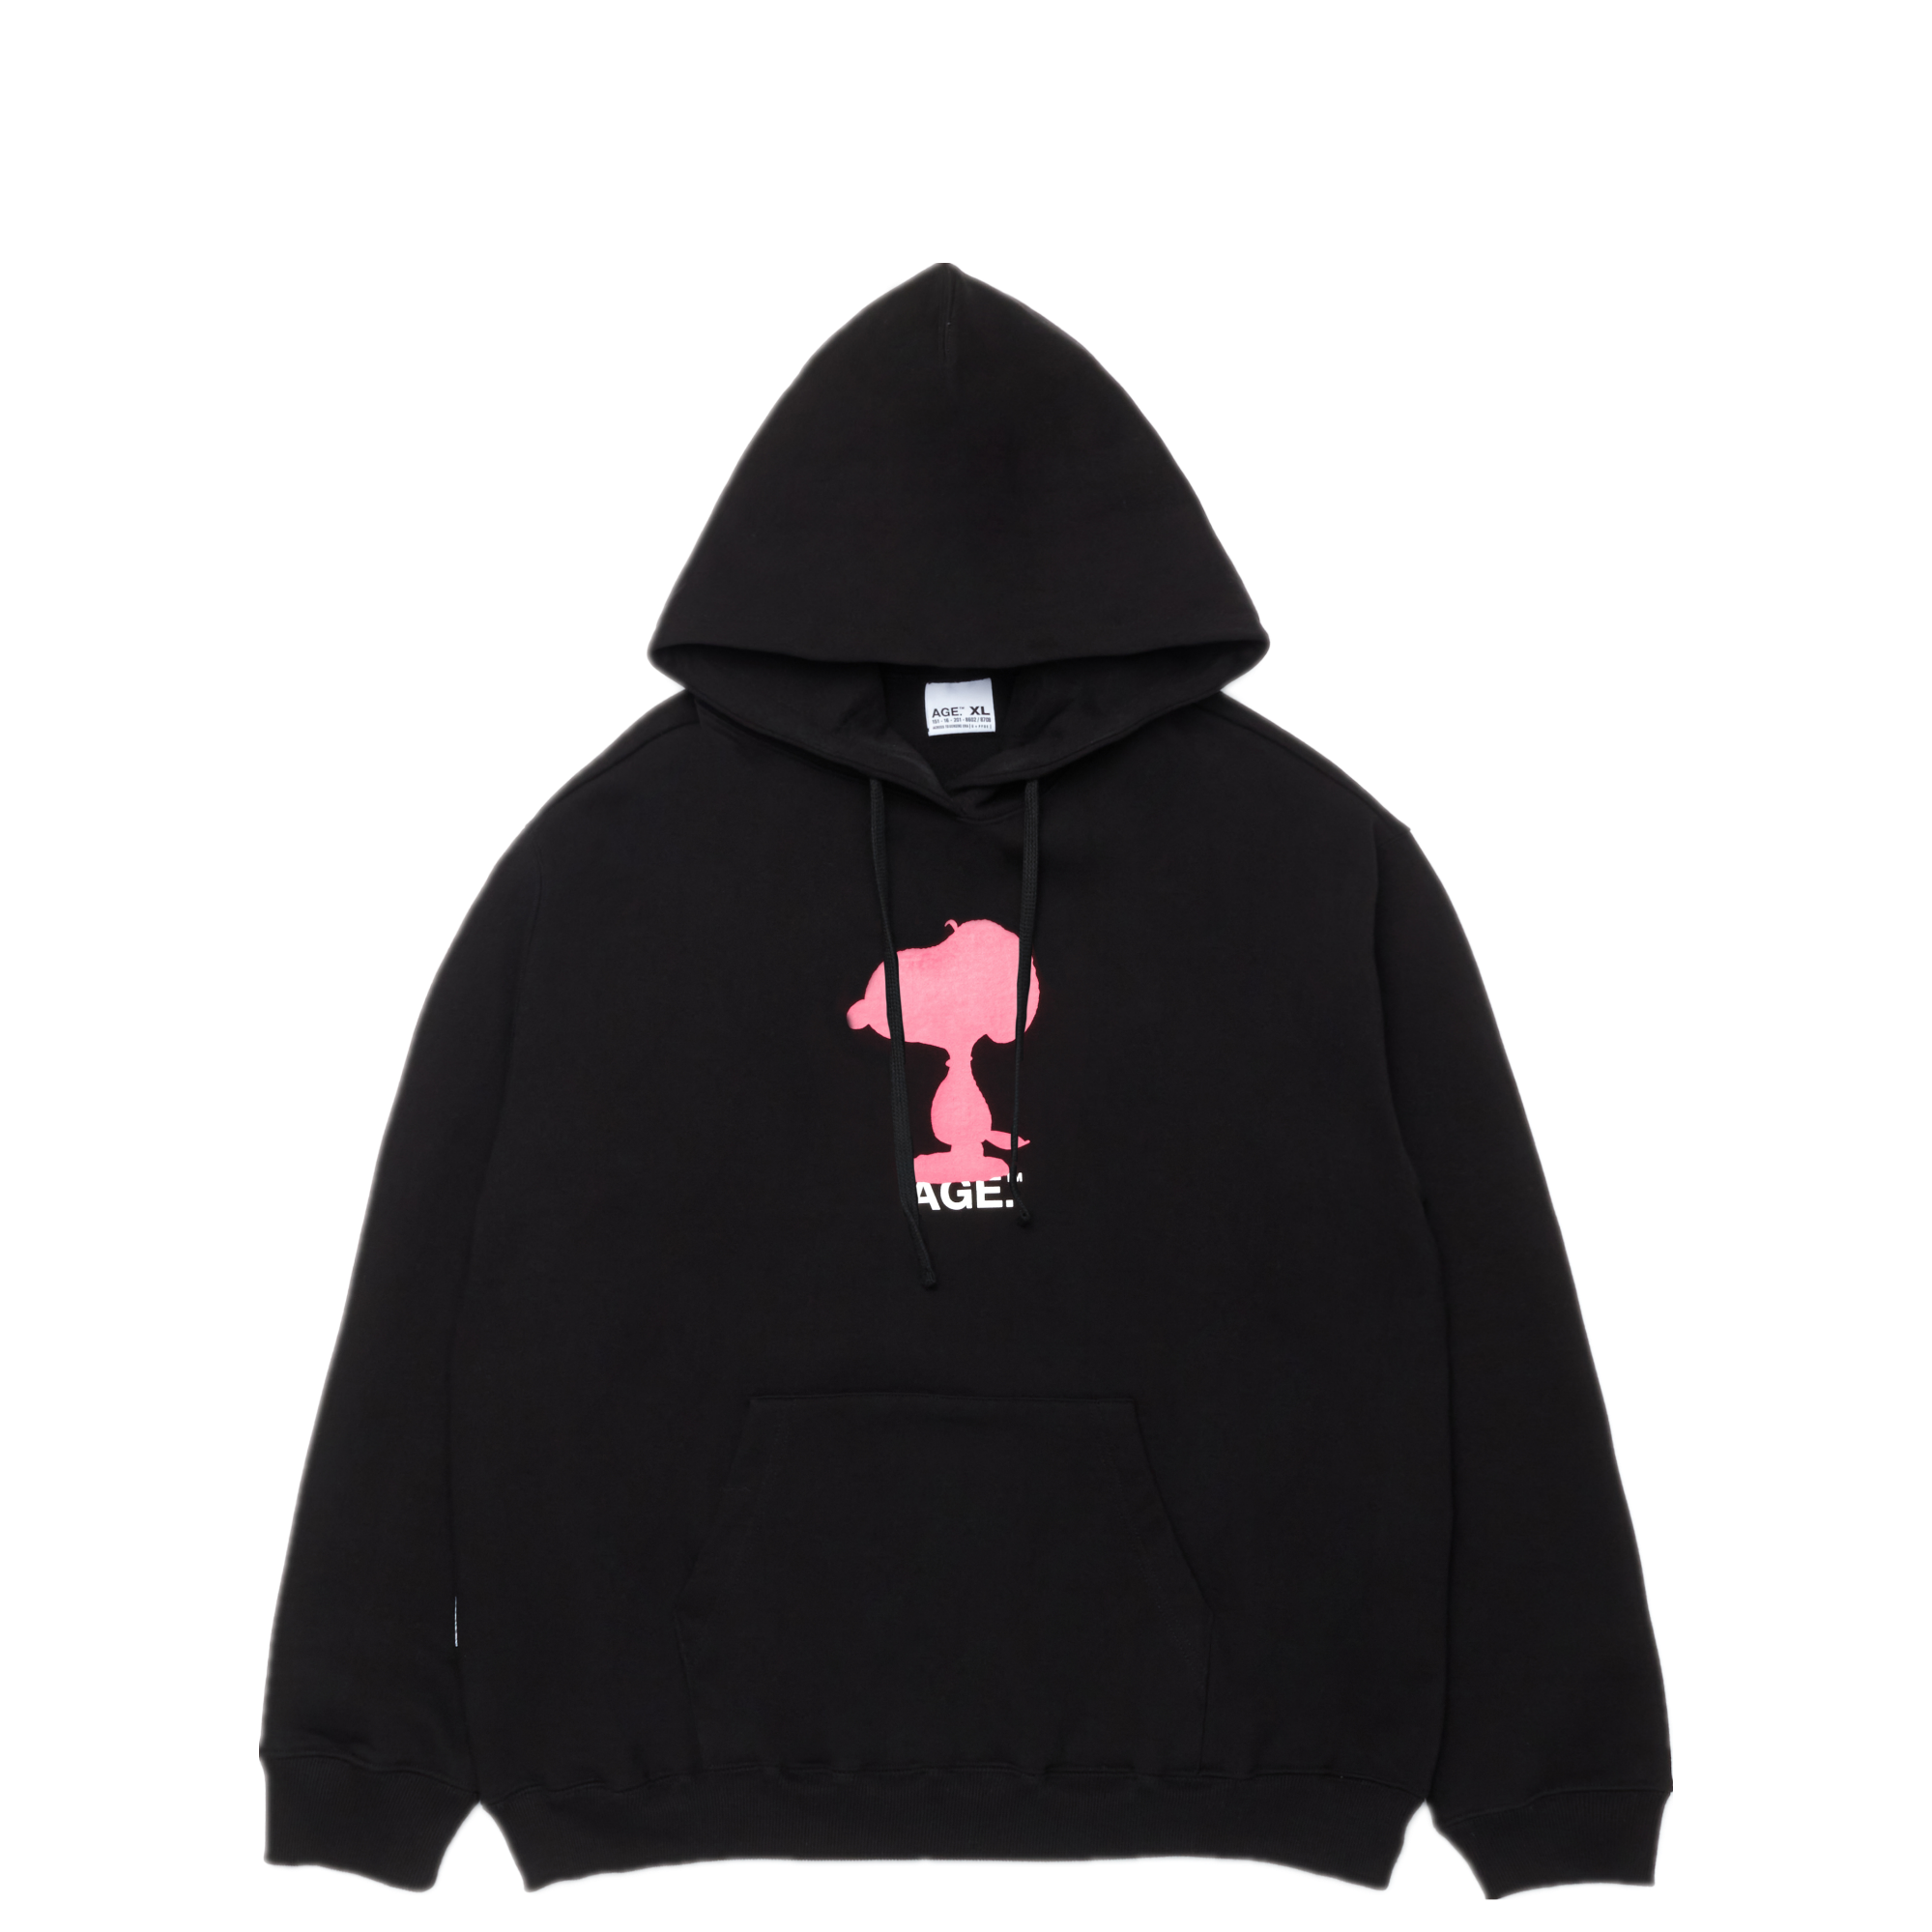 AGE X Snoopy Shadow Hooded BK/PK